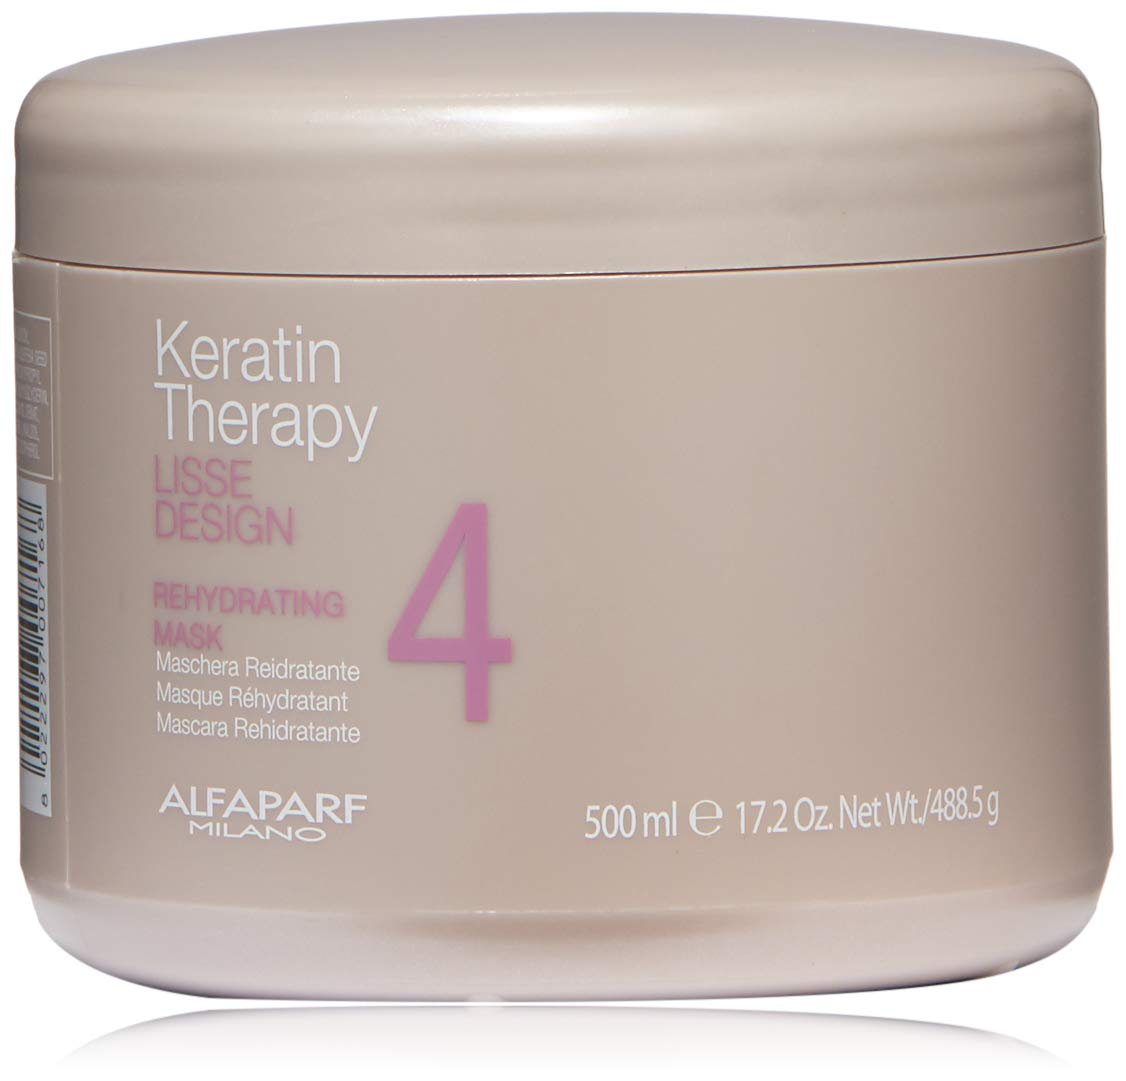 Alfaparf Milano Keratin Therapy Lisse Design Rehydrating Mask - Maintain and Enhance Keratin Treatment - Moisturize and Limit Natural Drying - Professional Salon Quality - 17.2 oz.